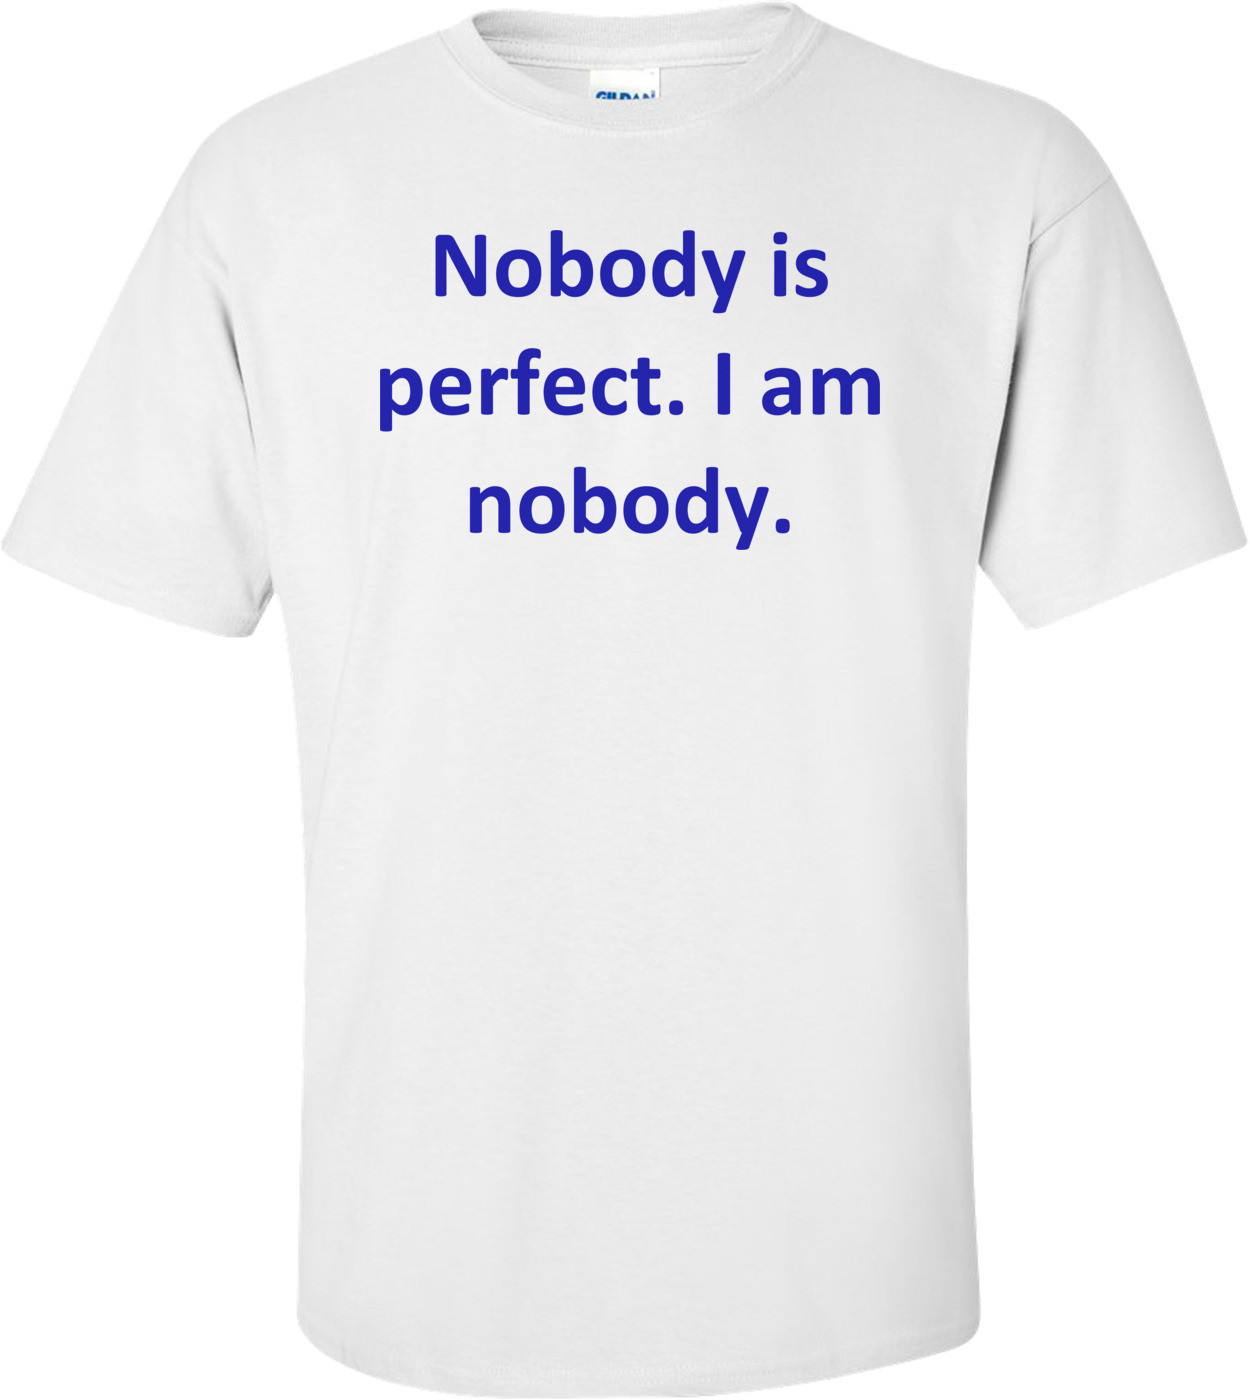 Nobody is perfect. I am nobody. Shirt